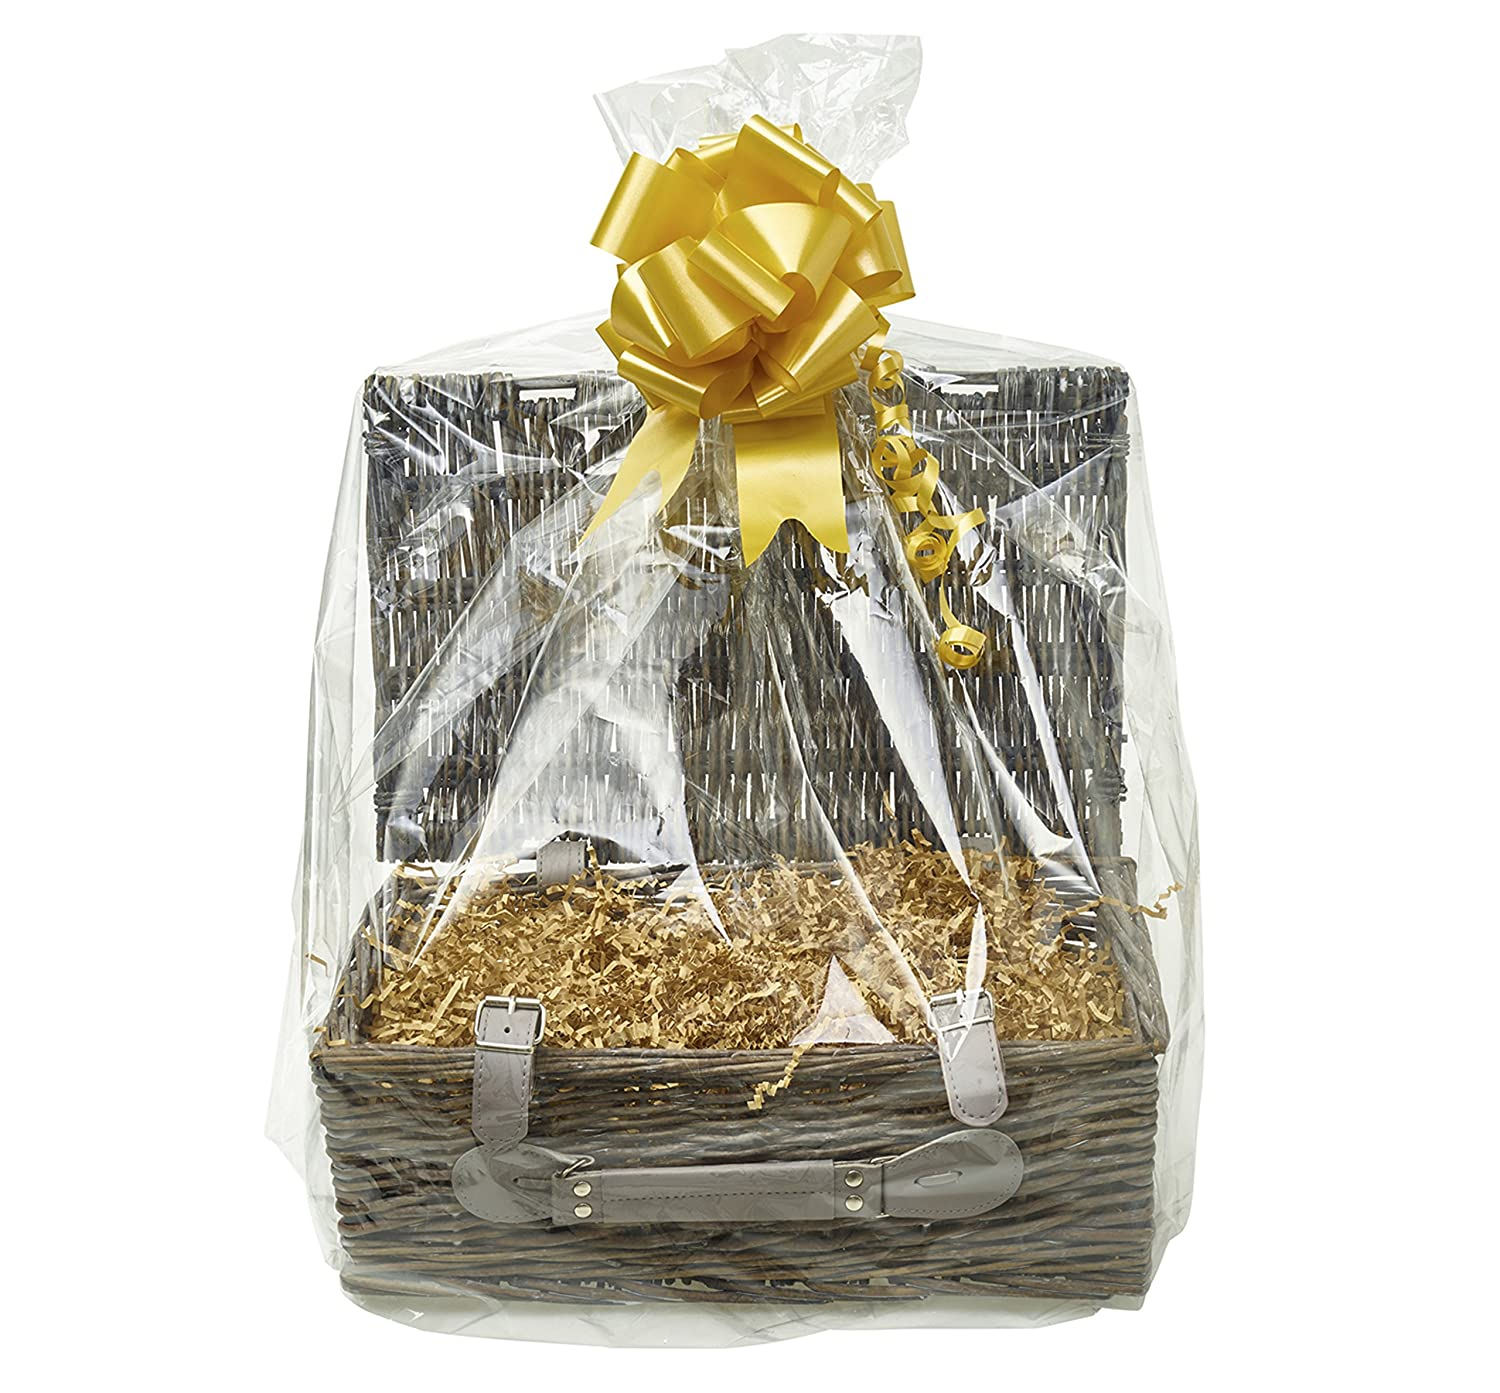 Your Gift Basket - Grey Willow Hamper Basket & DIY Hamper Kit with Light Brown Shred, Gold Bow and Clear Gift Wrap (340 mm Length x 210 mm Wide x 110 mm high)